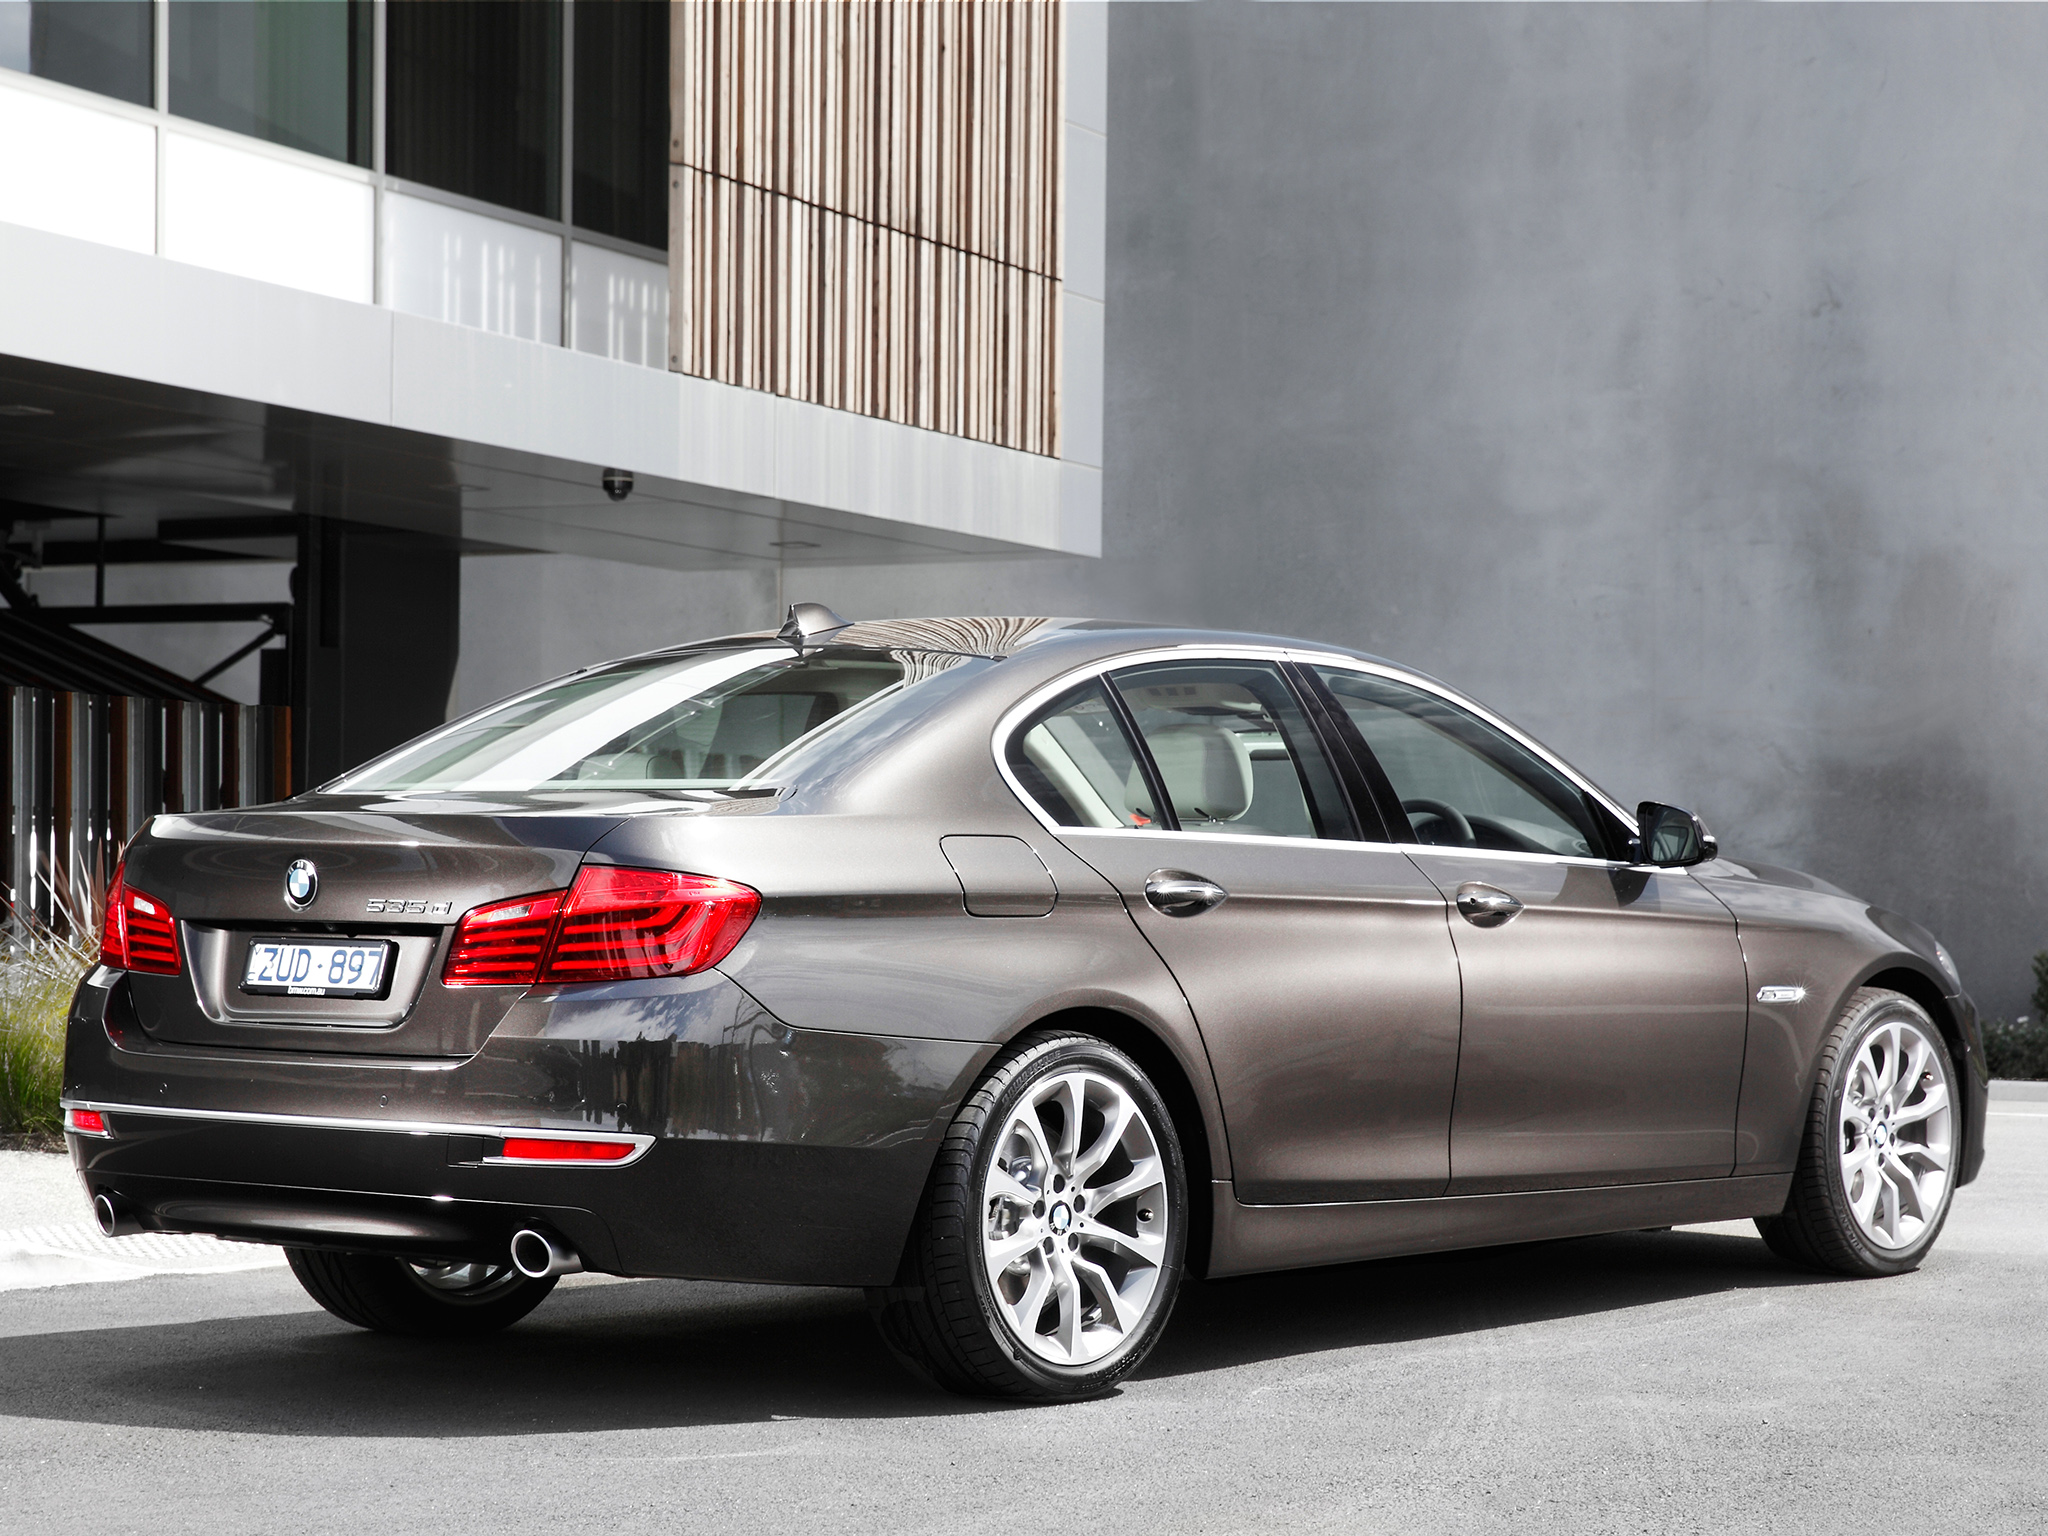 BMW 5 series 535d 2013 photo - 11